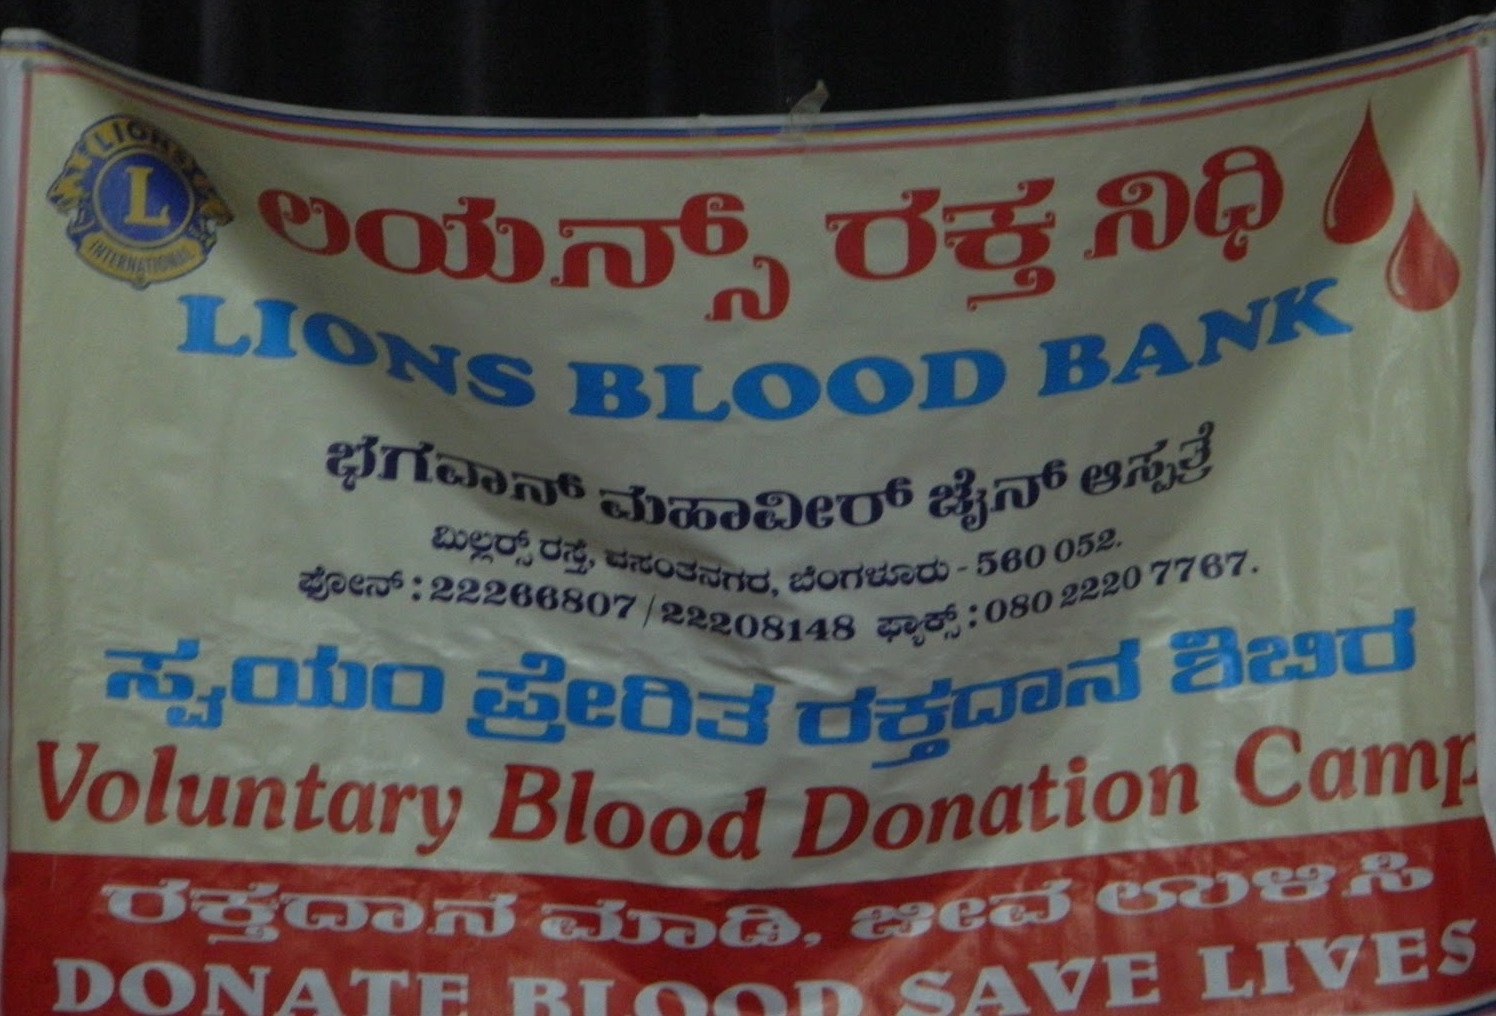 Lions Blood Bank